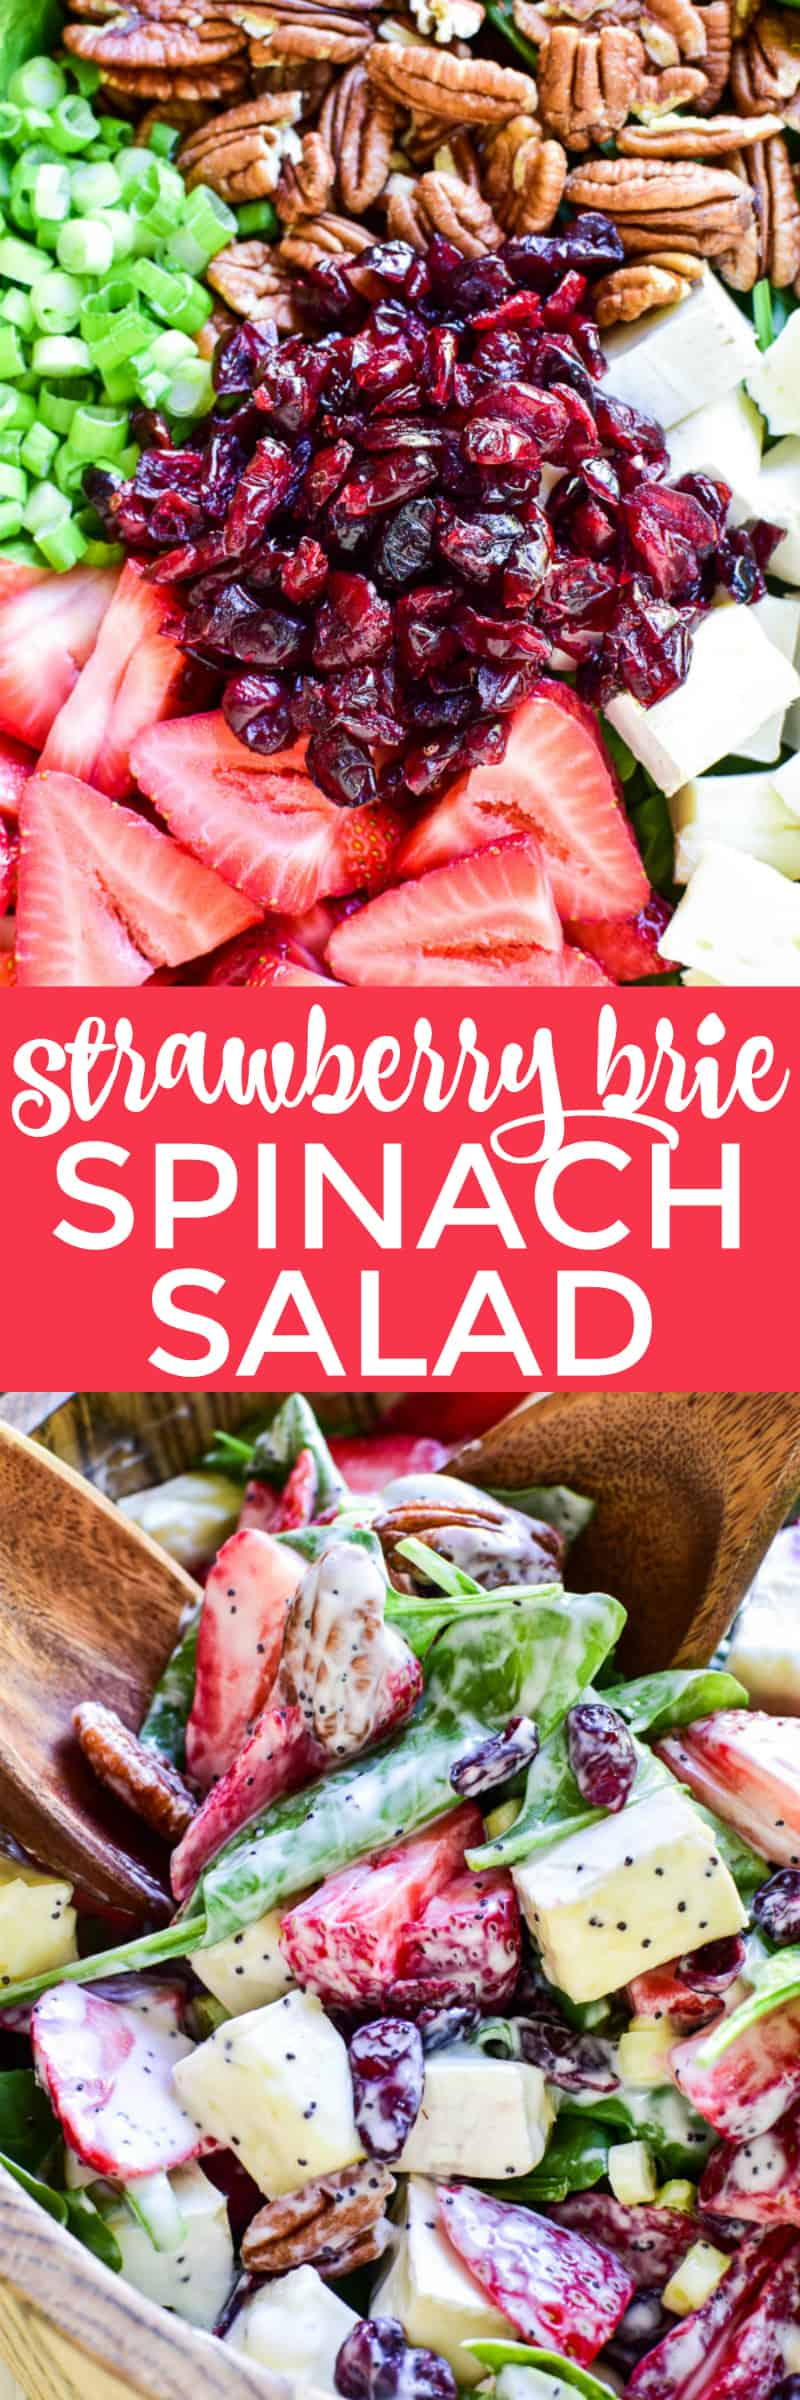 This Strawberry Brie Spinach Salad is one of our favorites! Made with fresh spinach, sliced strawberries, dried cranberries, pecans, and brie cheese, this salad is the perfect combination of savory, sweet, creamy, and delicious. It makes a great lunchtime salad and can be topped with chicken or shrimp for a more satisfying dinner. And....it's equally delicious as a fresh, unique side dish for any meal. Whether you're a spinach salad connoisseur or trying it for the first time, you'll love everything about this creamy strawberry brie twist!